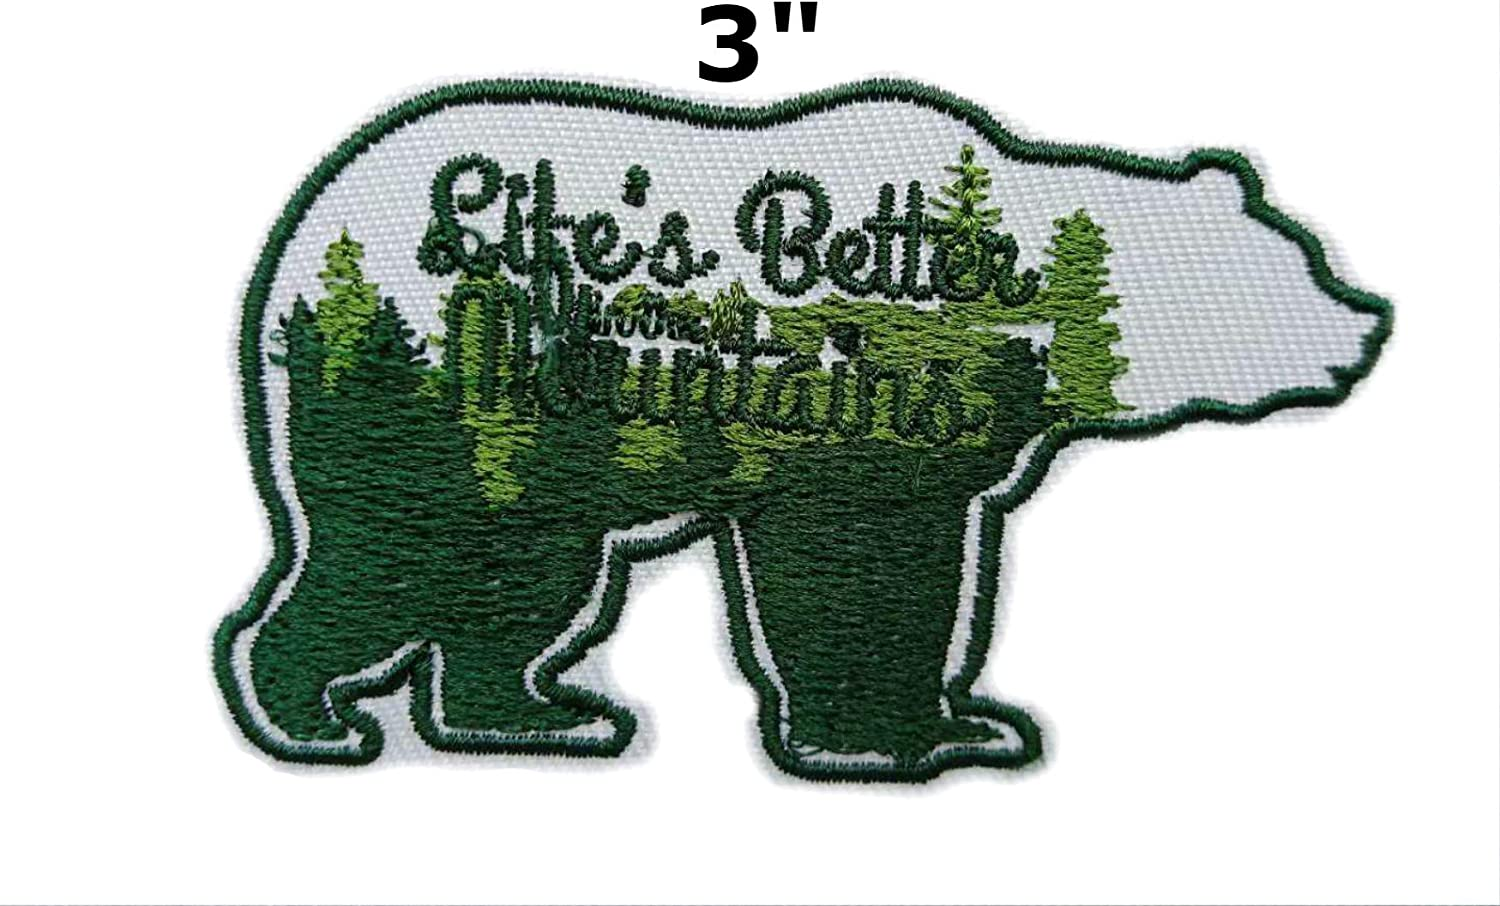 Bear Mountains Trees Embroidered Patch Iron-On or Sew-On Explore Nature Applique